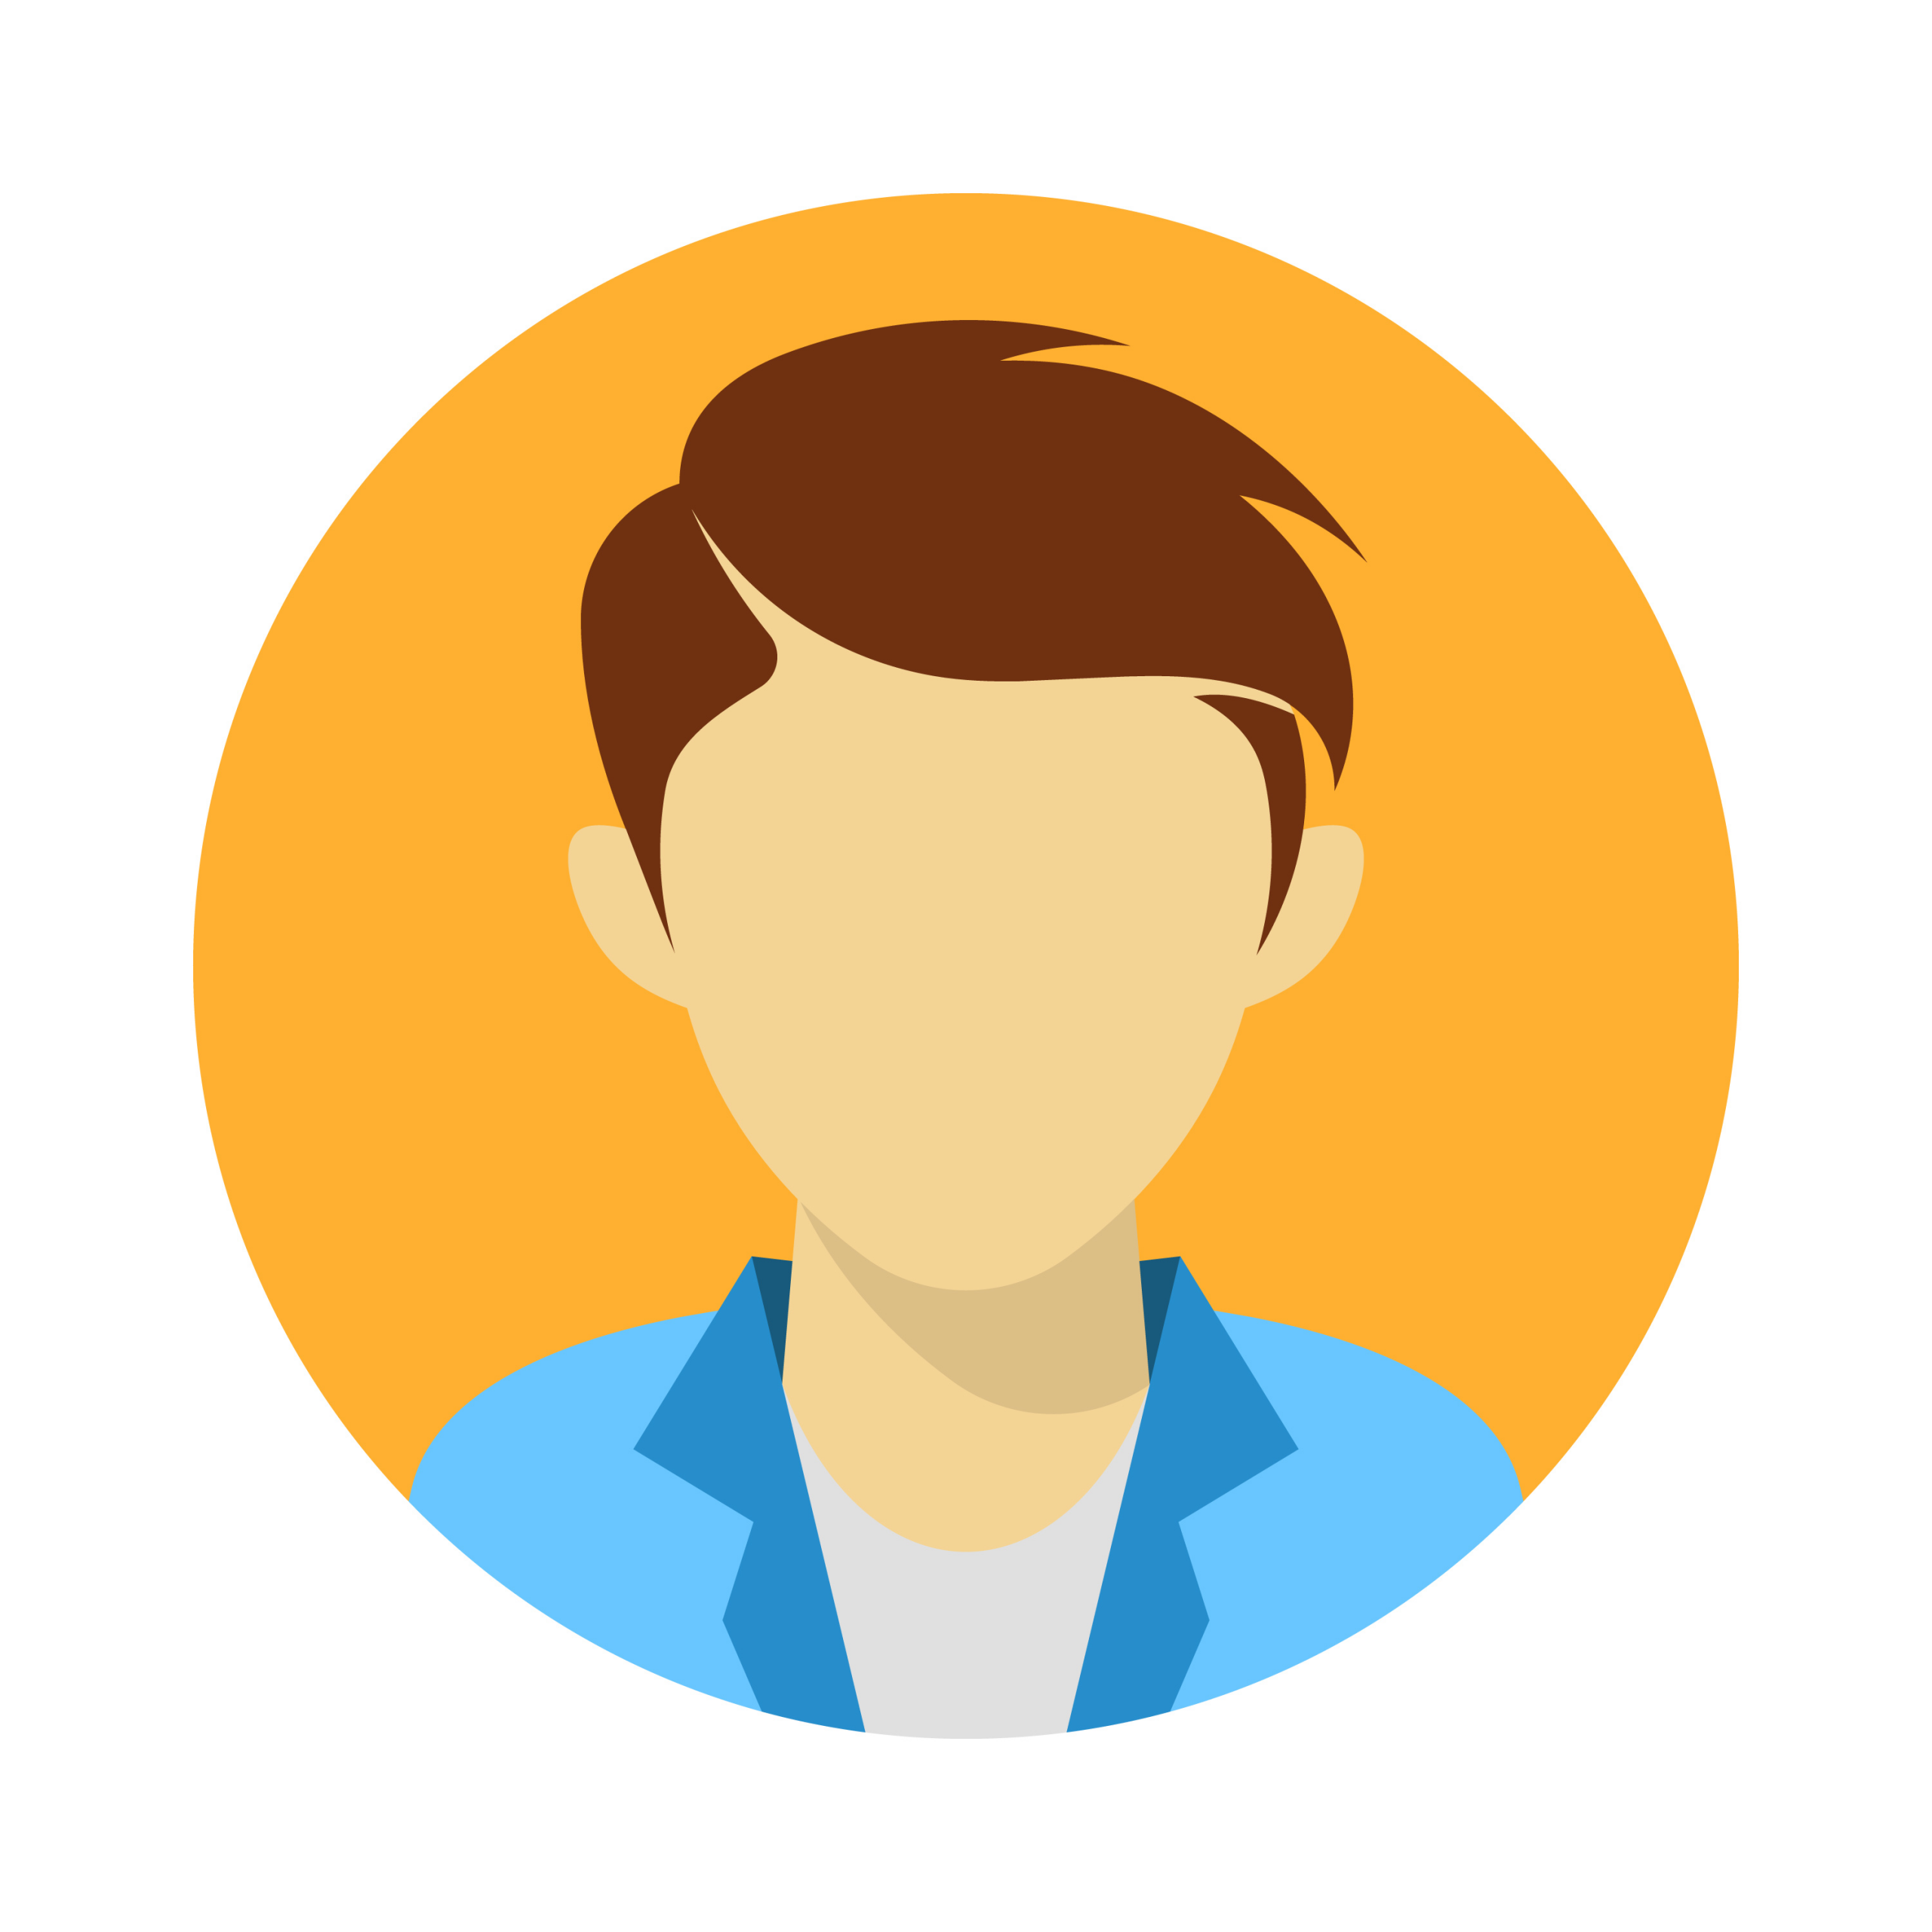 Pngtree—handsome-young-guy-avatar-cartoon_5233396.png